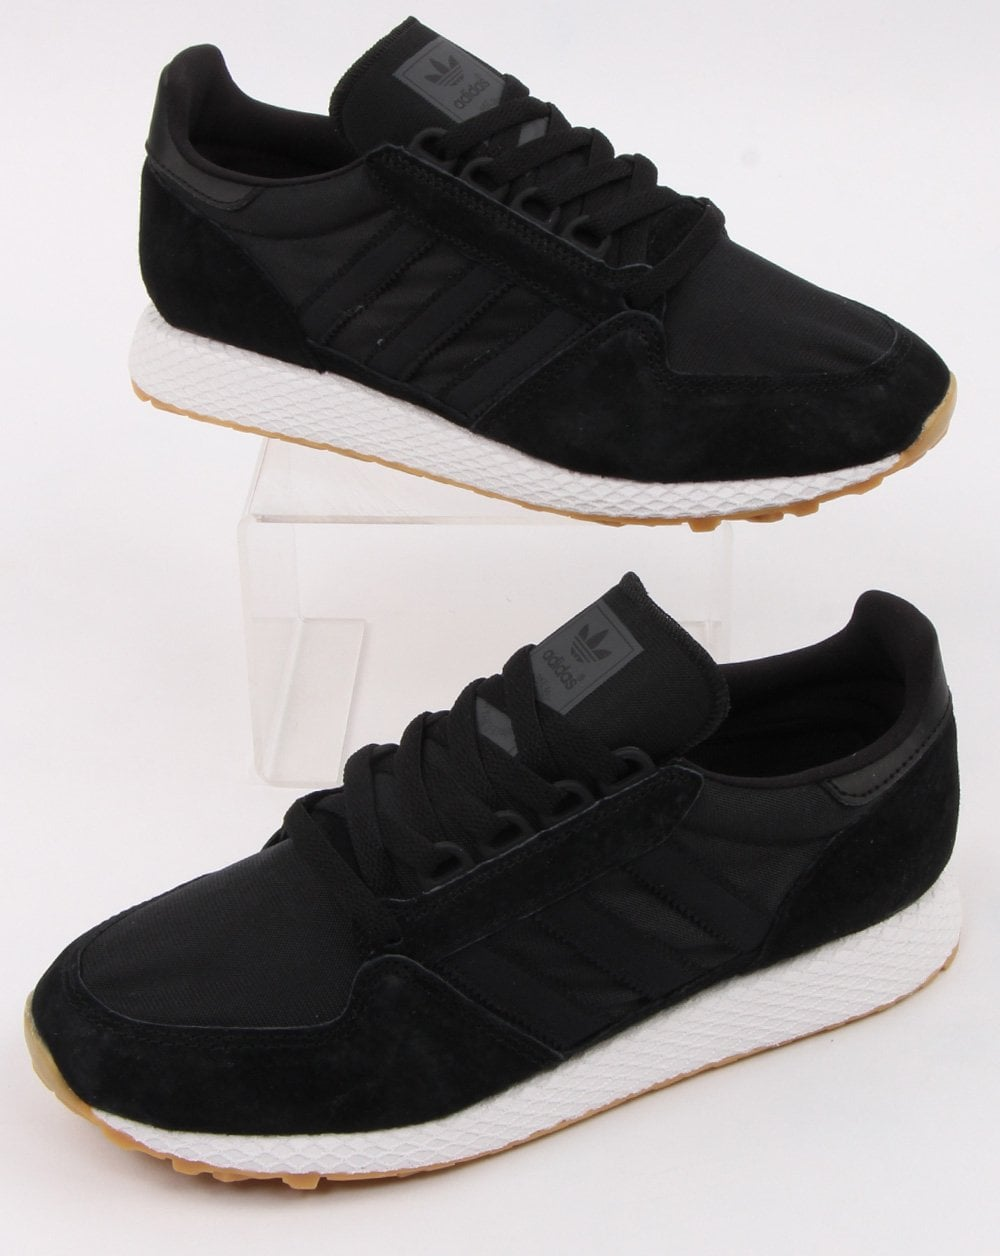 45d90d242101 adidas Trainers Adidas Forest Grove Trainers Black black